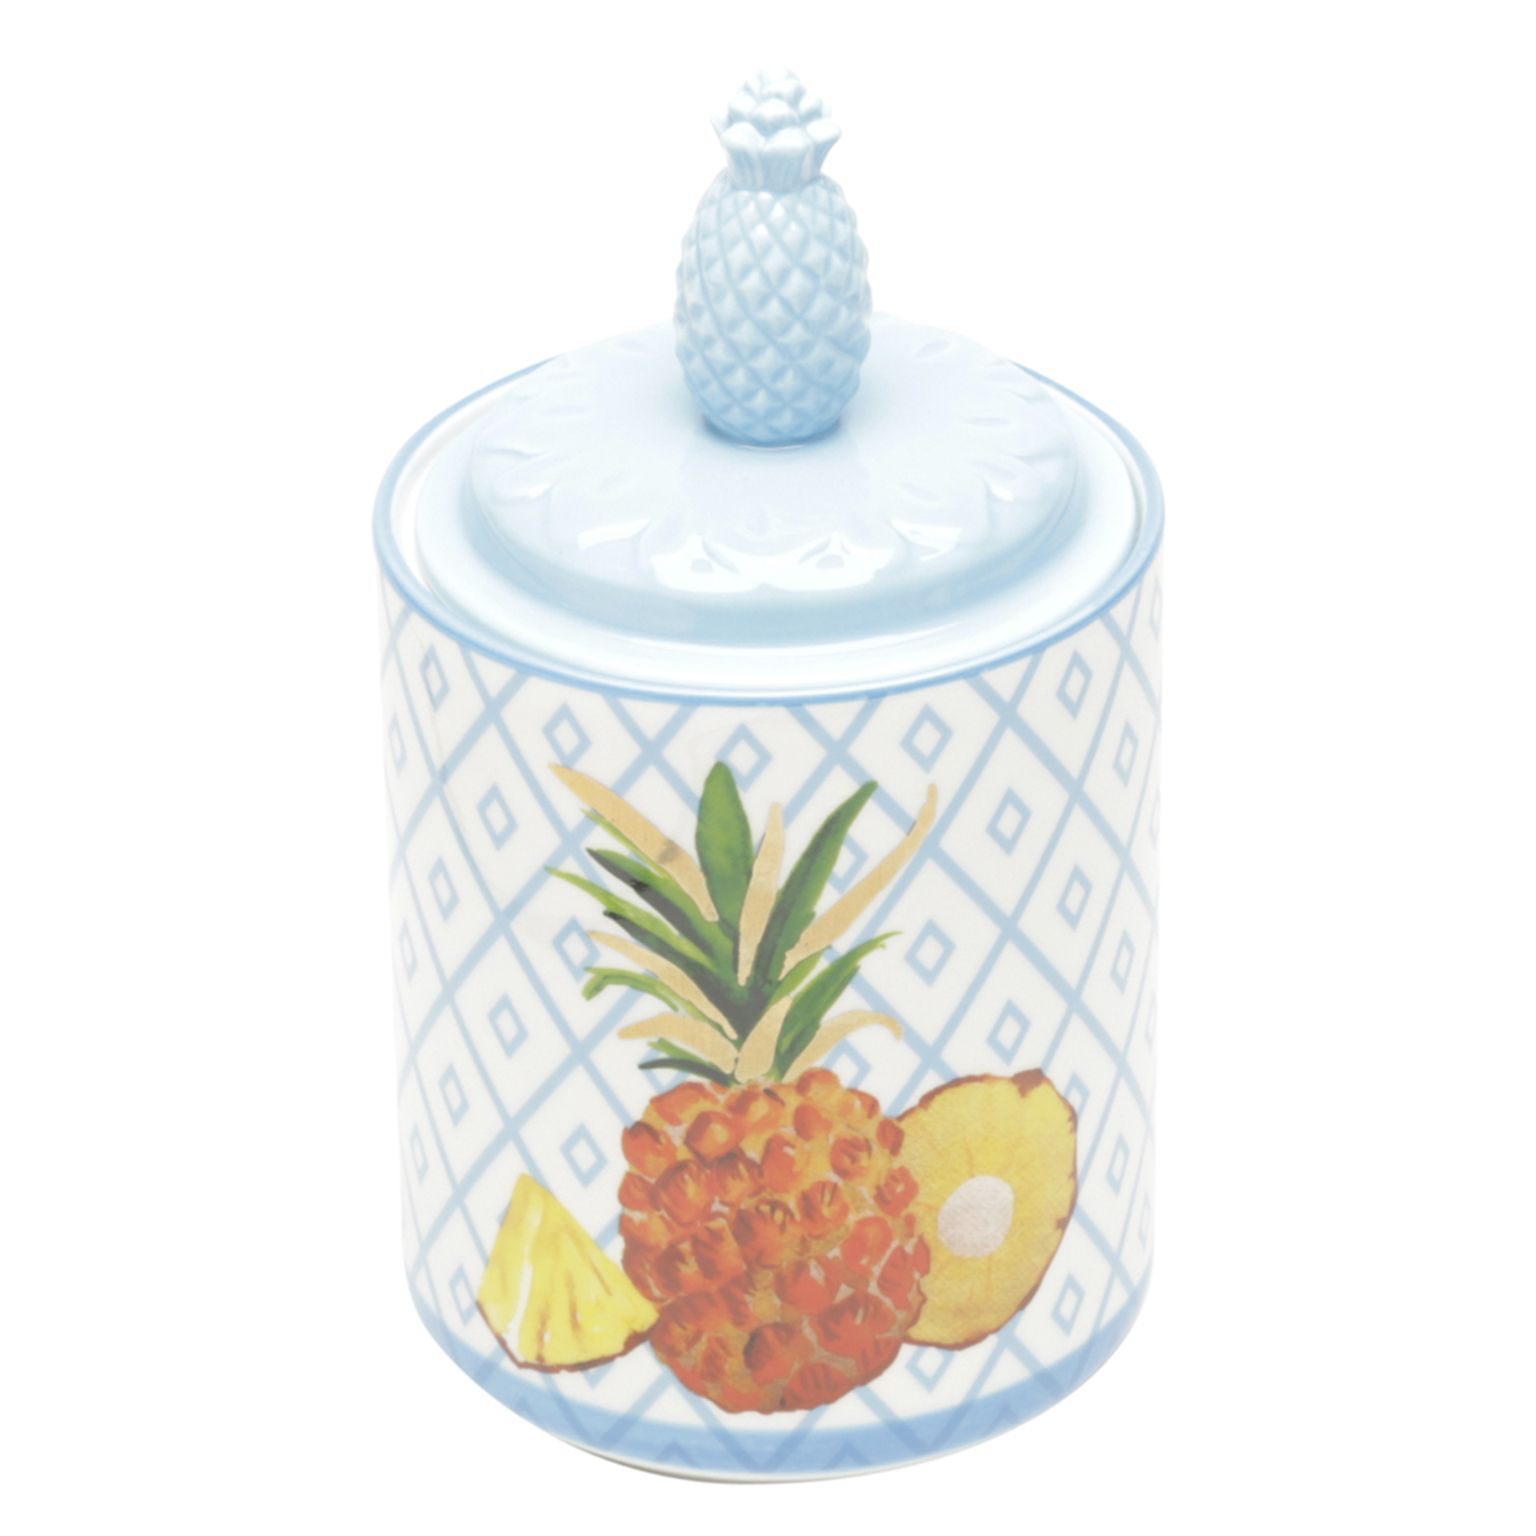 Potiche em Porcelana Pineapple Colors